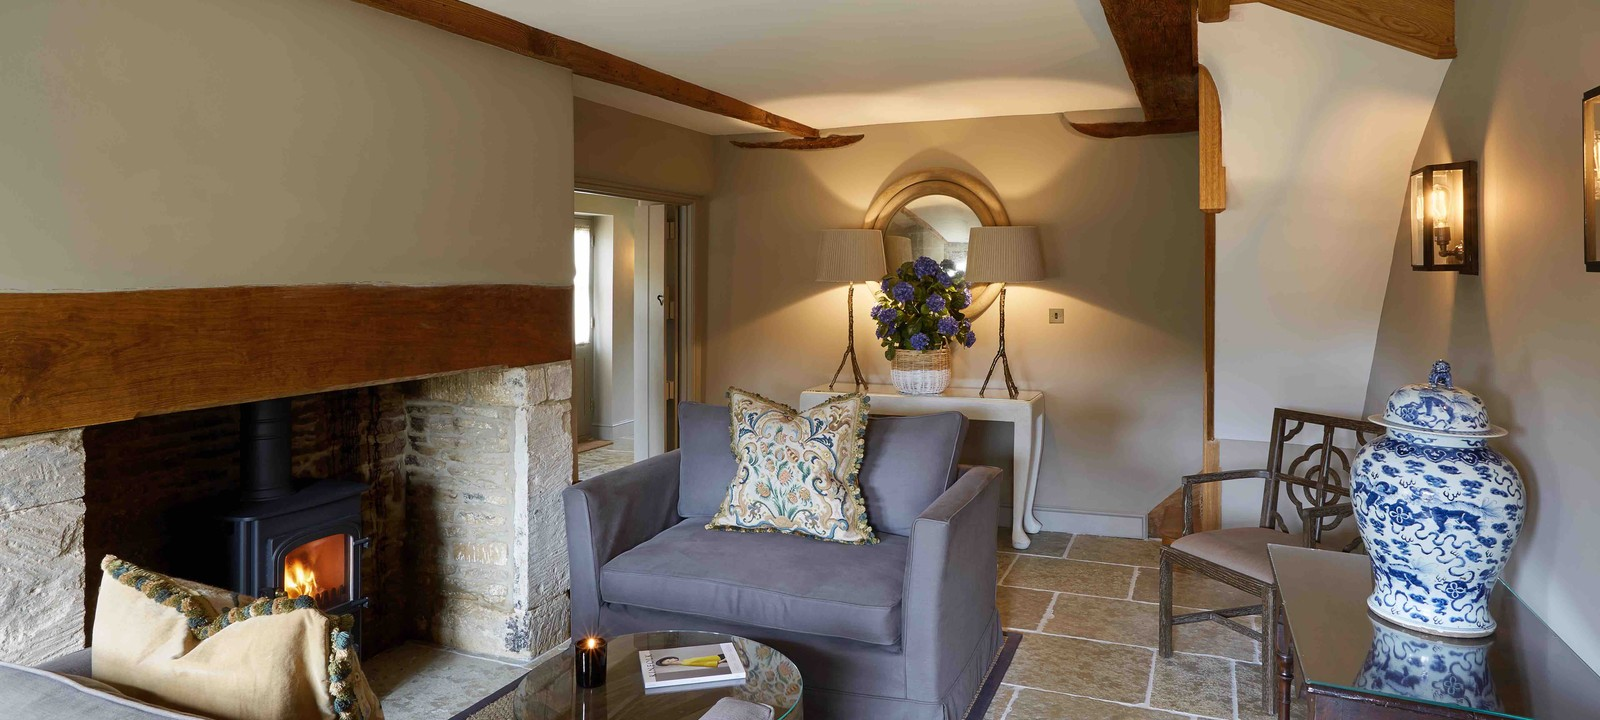 Luxury Self Catering Cottage Rentals In The Cotswolds